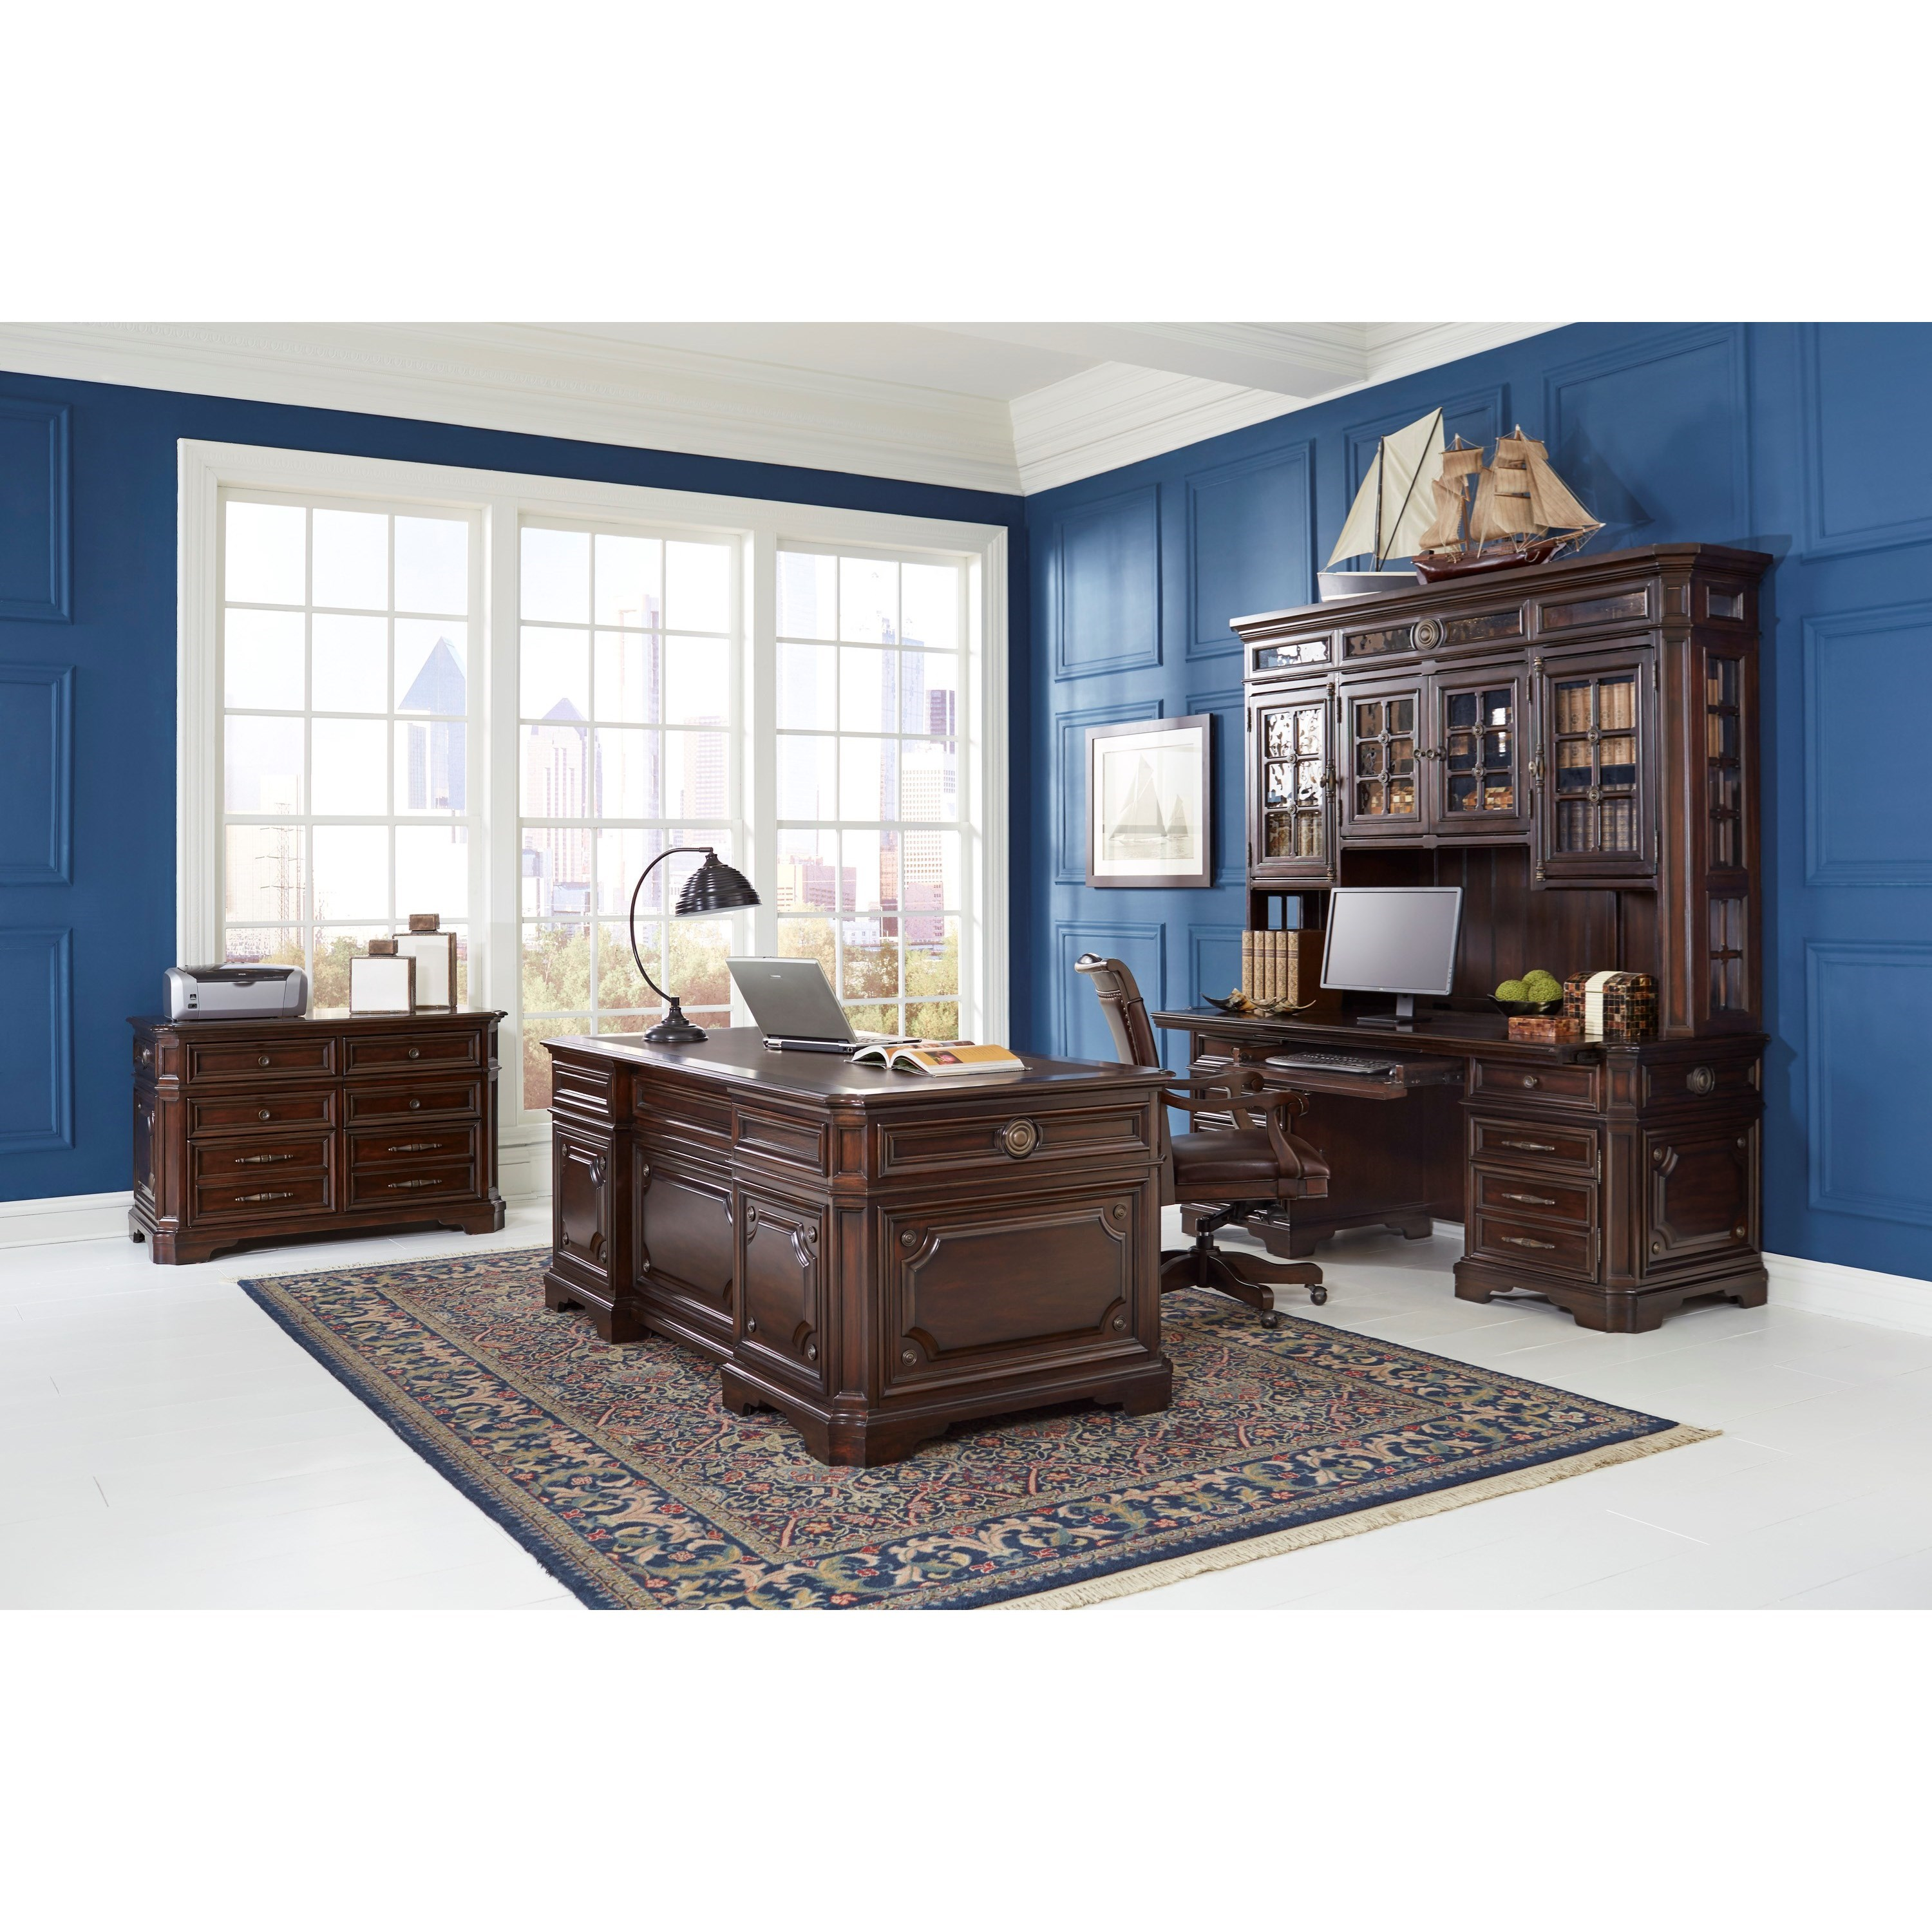 "Aspenhome Sheffield Traditional 75"" Credenza Desk With LED"